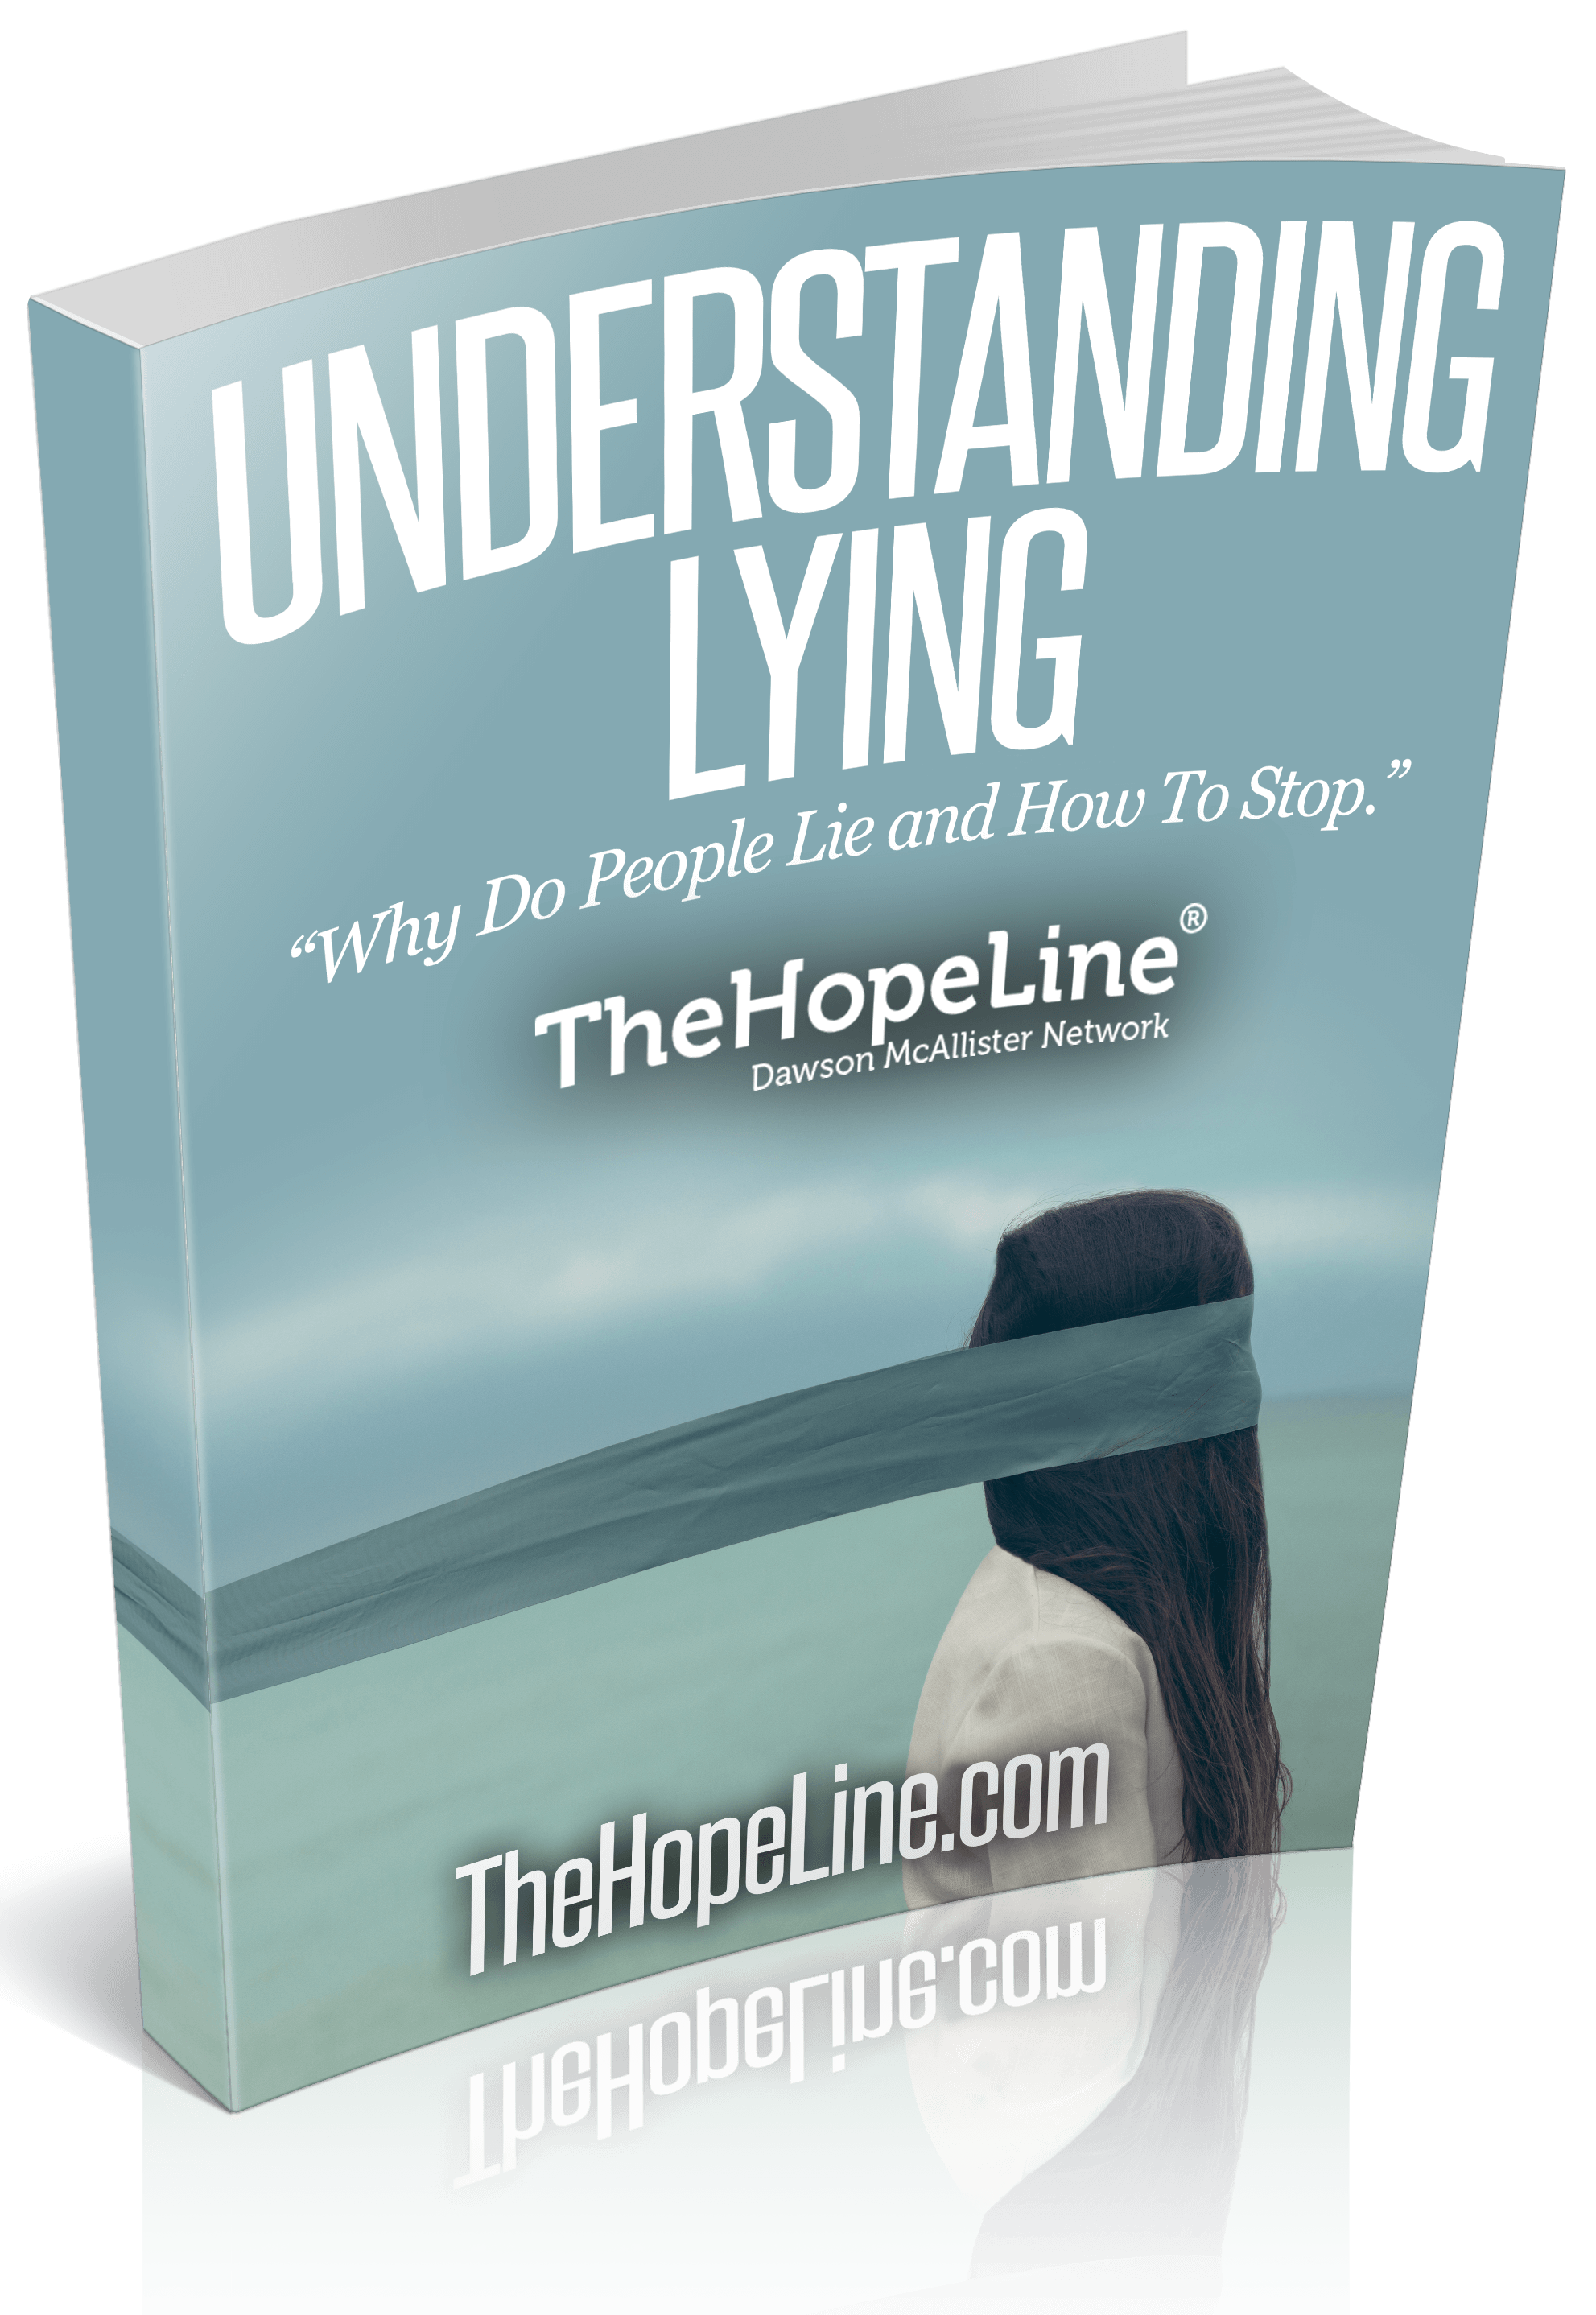 Understand why people lie or how to stop lying